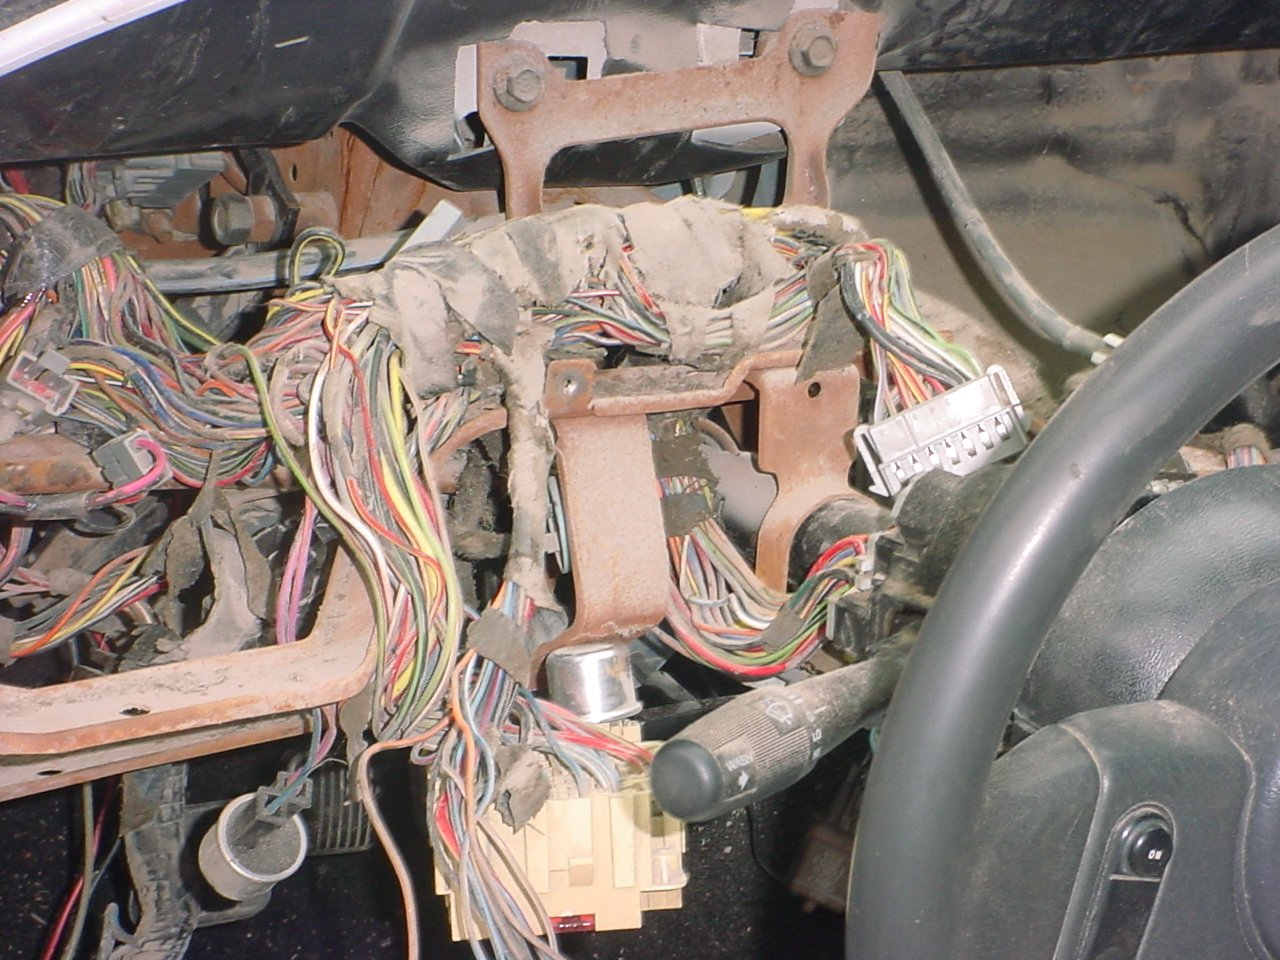 91 Jeep Under Dash Wiring | circuit diagram template  Jeep Wire Harness on chevrolet wire harness, dodge ram wire harness, mercury wire harness, tesla wire harness, car wire harness, chrysler wire harness, willys m38 wire harness, mopar wire harness, porsche wire harness, pontiac wire harness, mclaren wire harness, gmc wire harness, model a wire harness, vw wire harness, corvette wire harness, caterpillar wire harness, ford wire harness, bus wire harness, kawasaki wire harness, daihatsu wire harness,